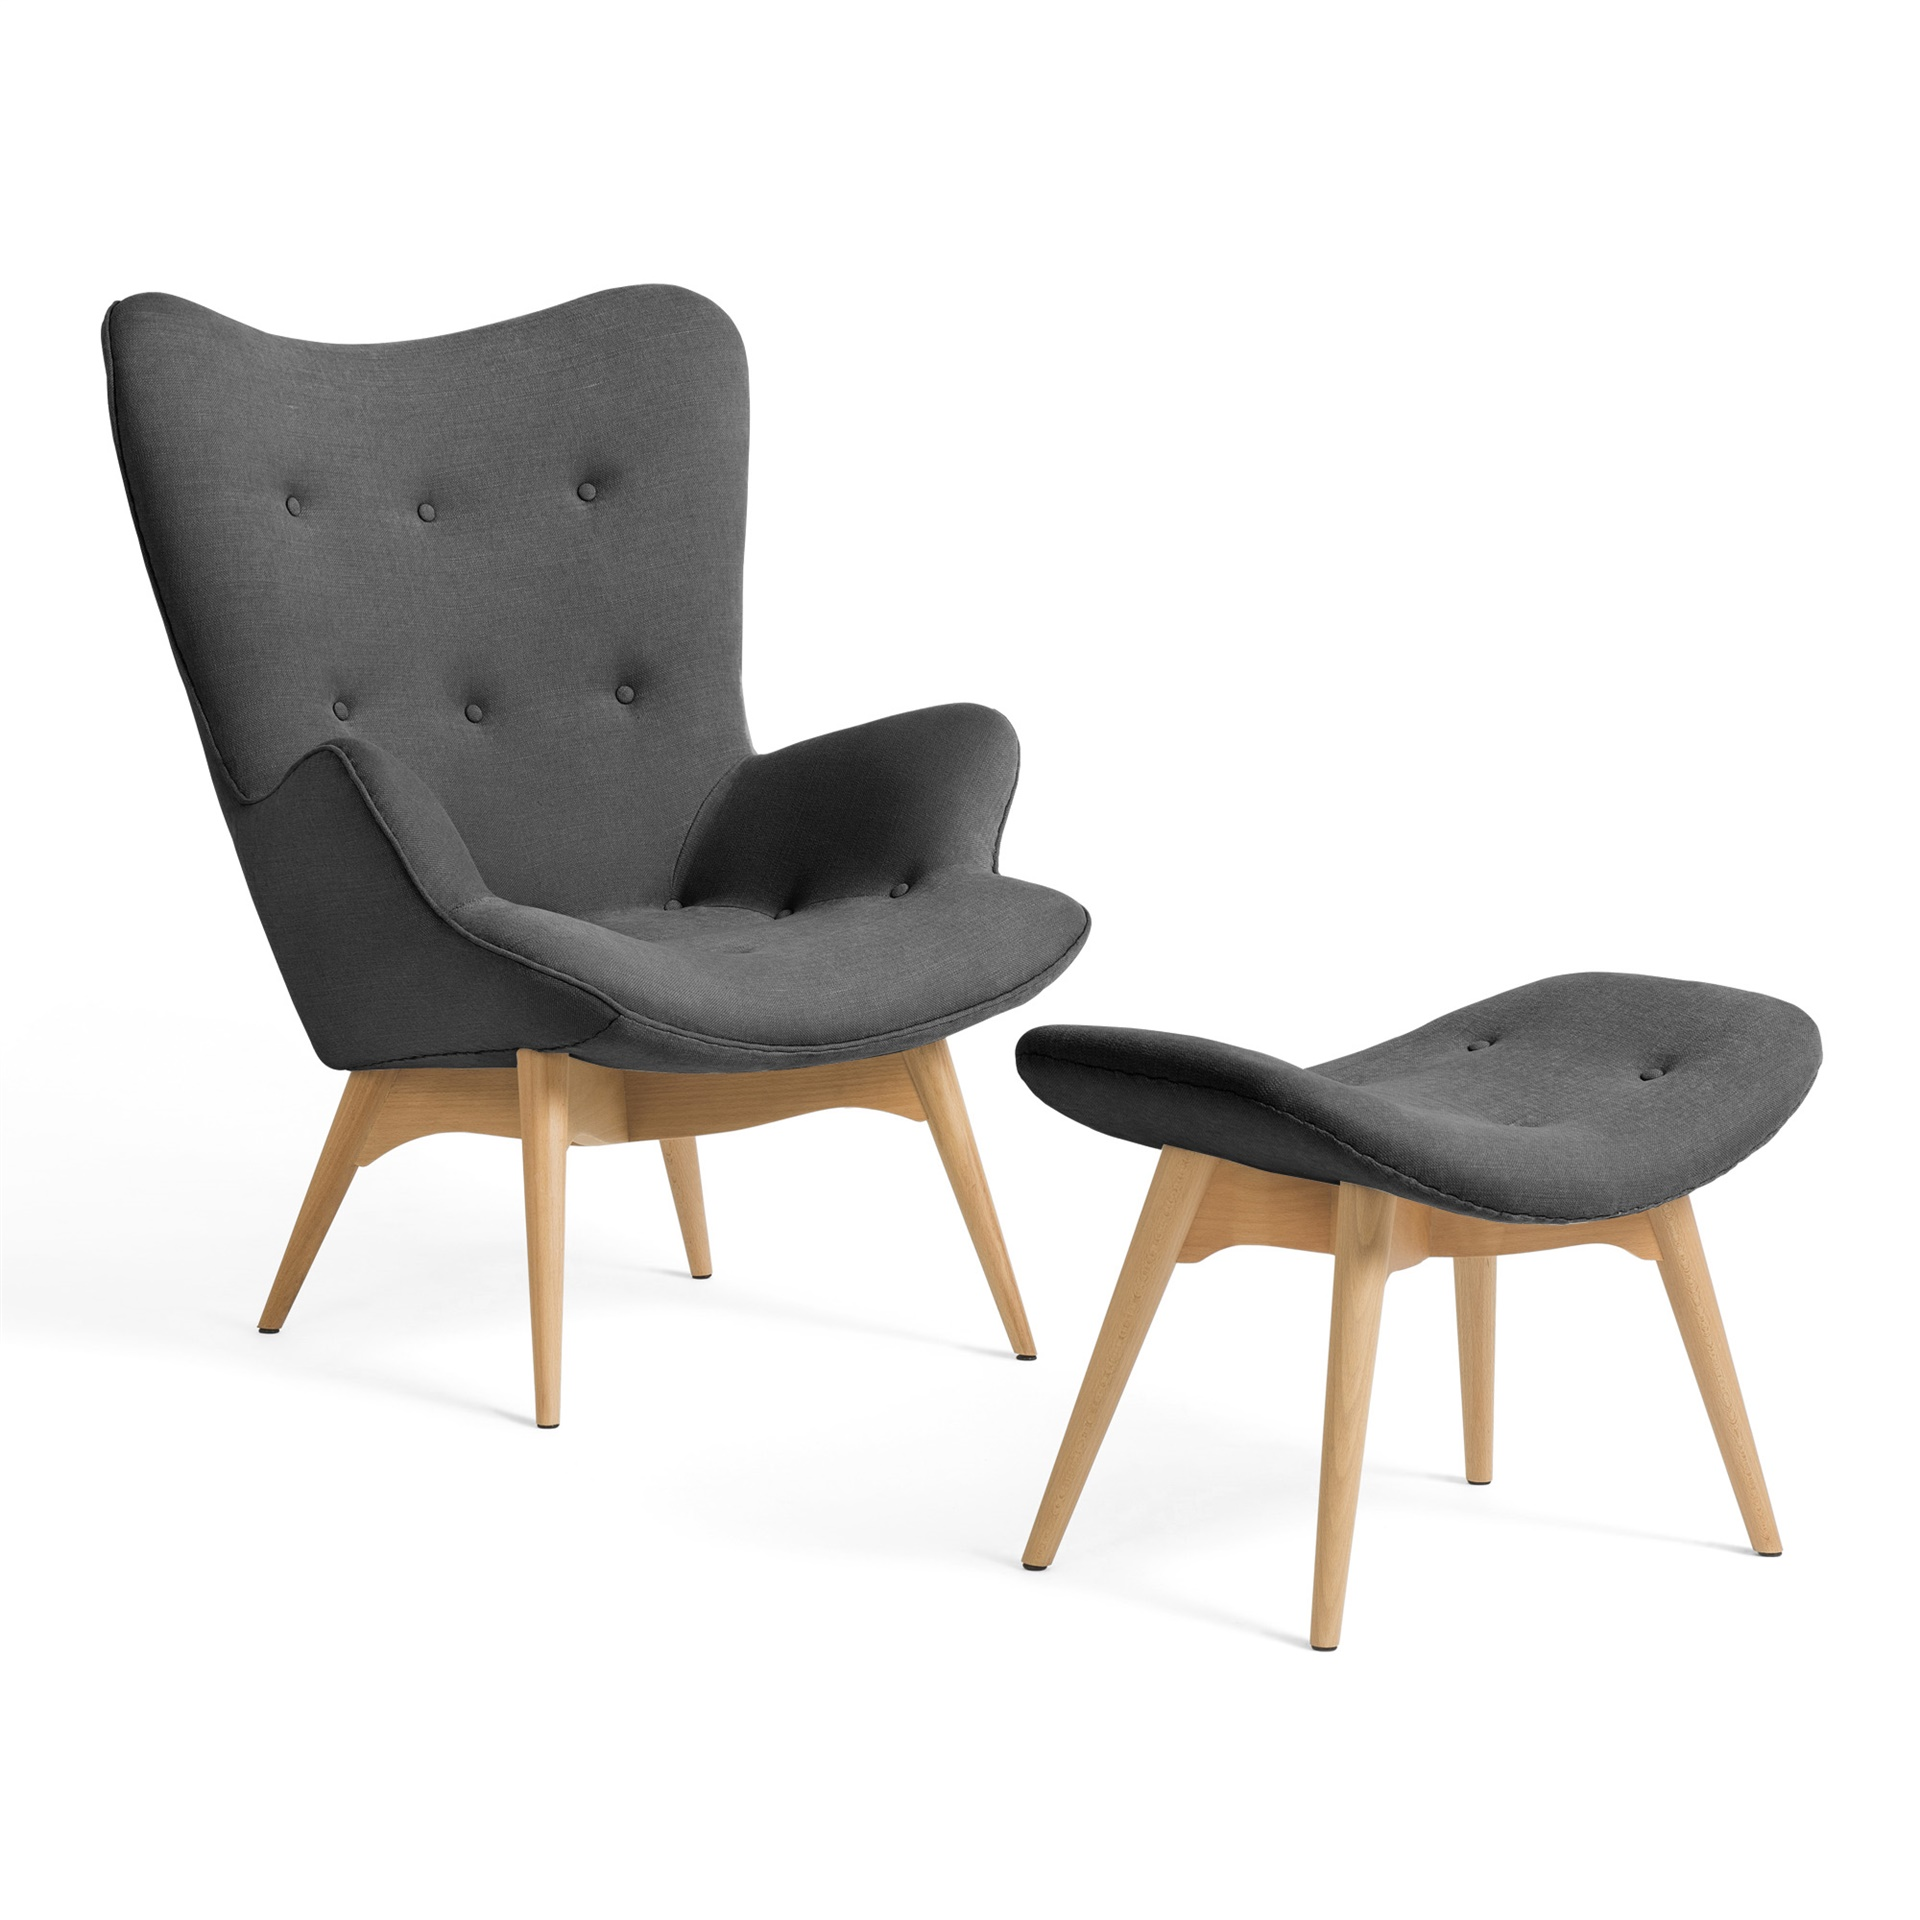 Contour Chair Lounge Grant Featherston Contour Lounge Chair